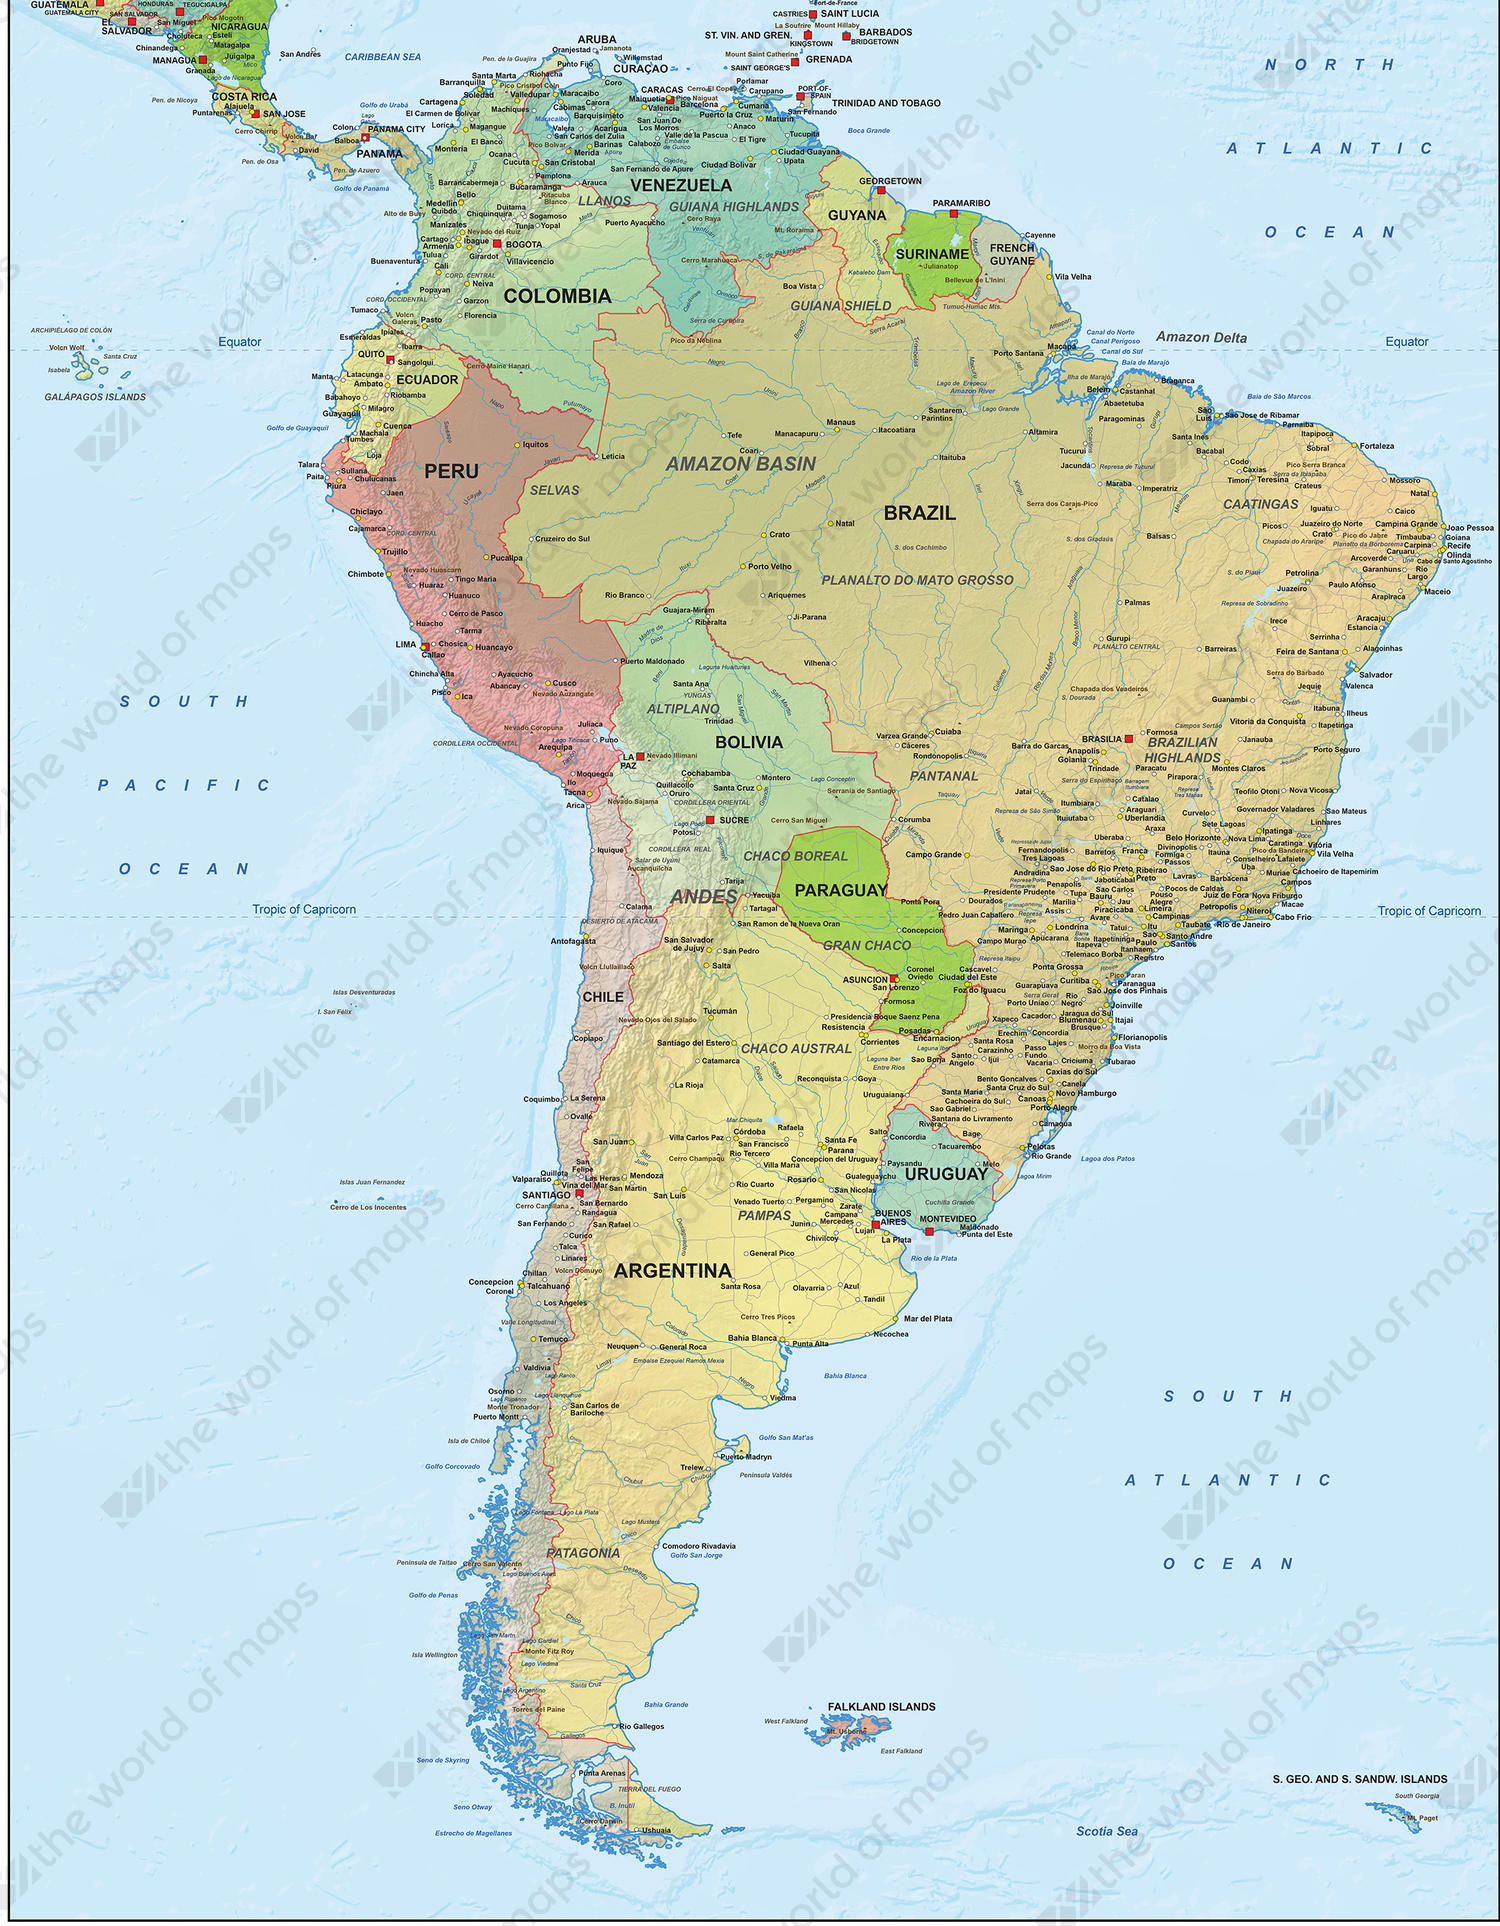 Digital Political Map South America 1292 | The World of Maps.com